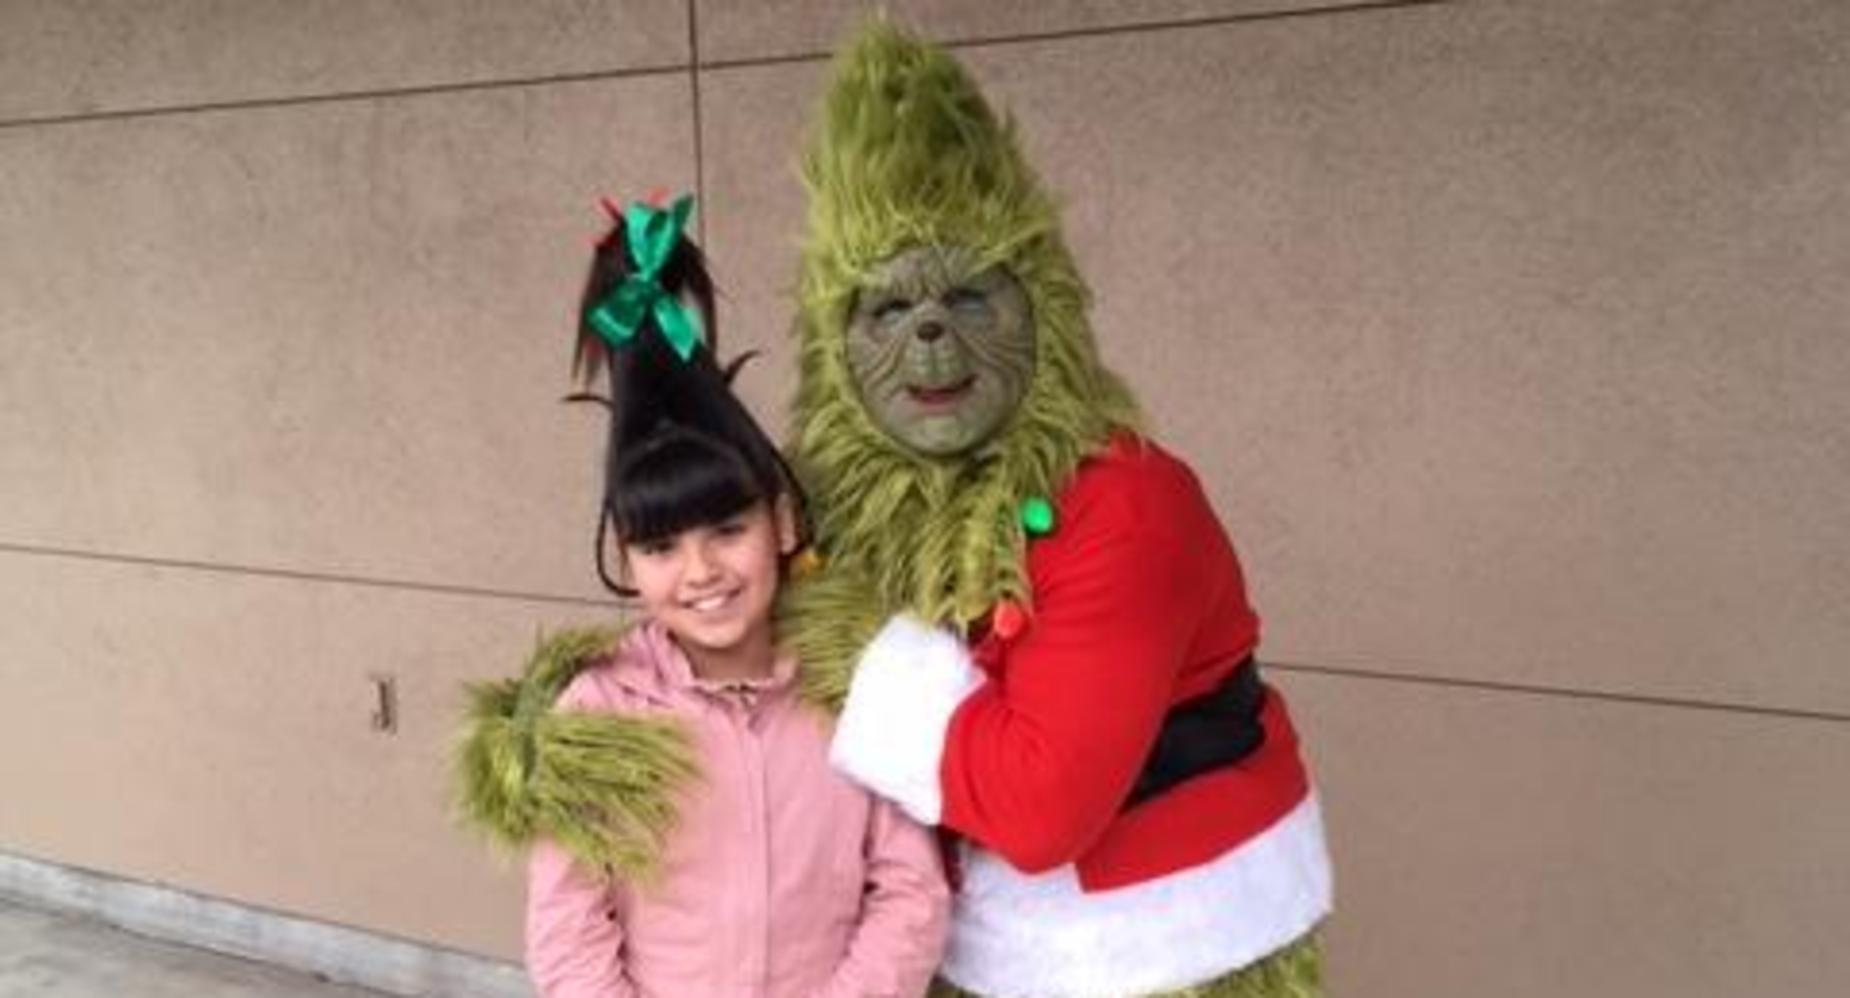 Mr. Grinch and Cindy Loo